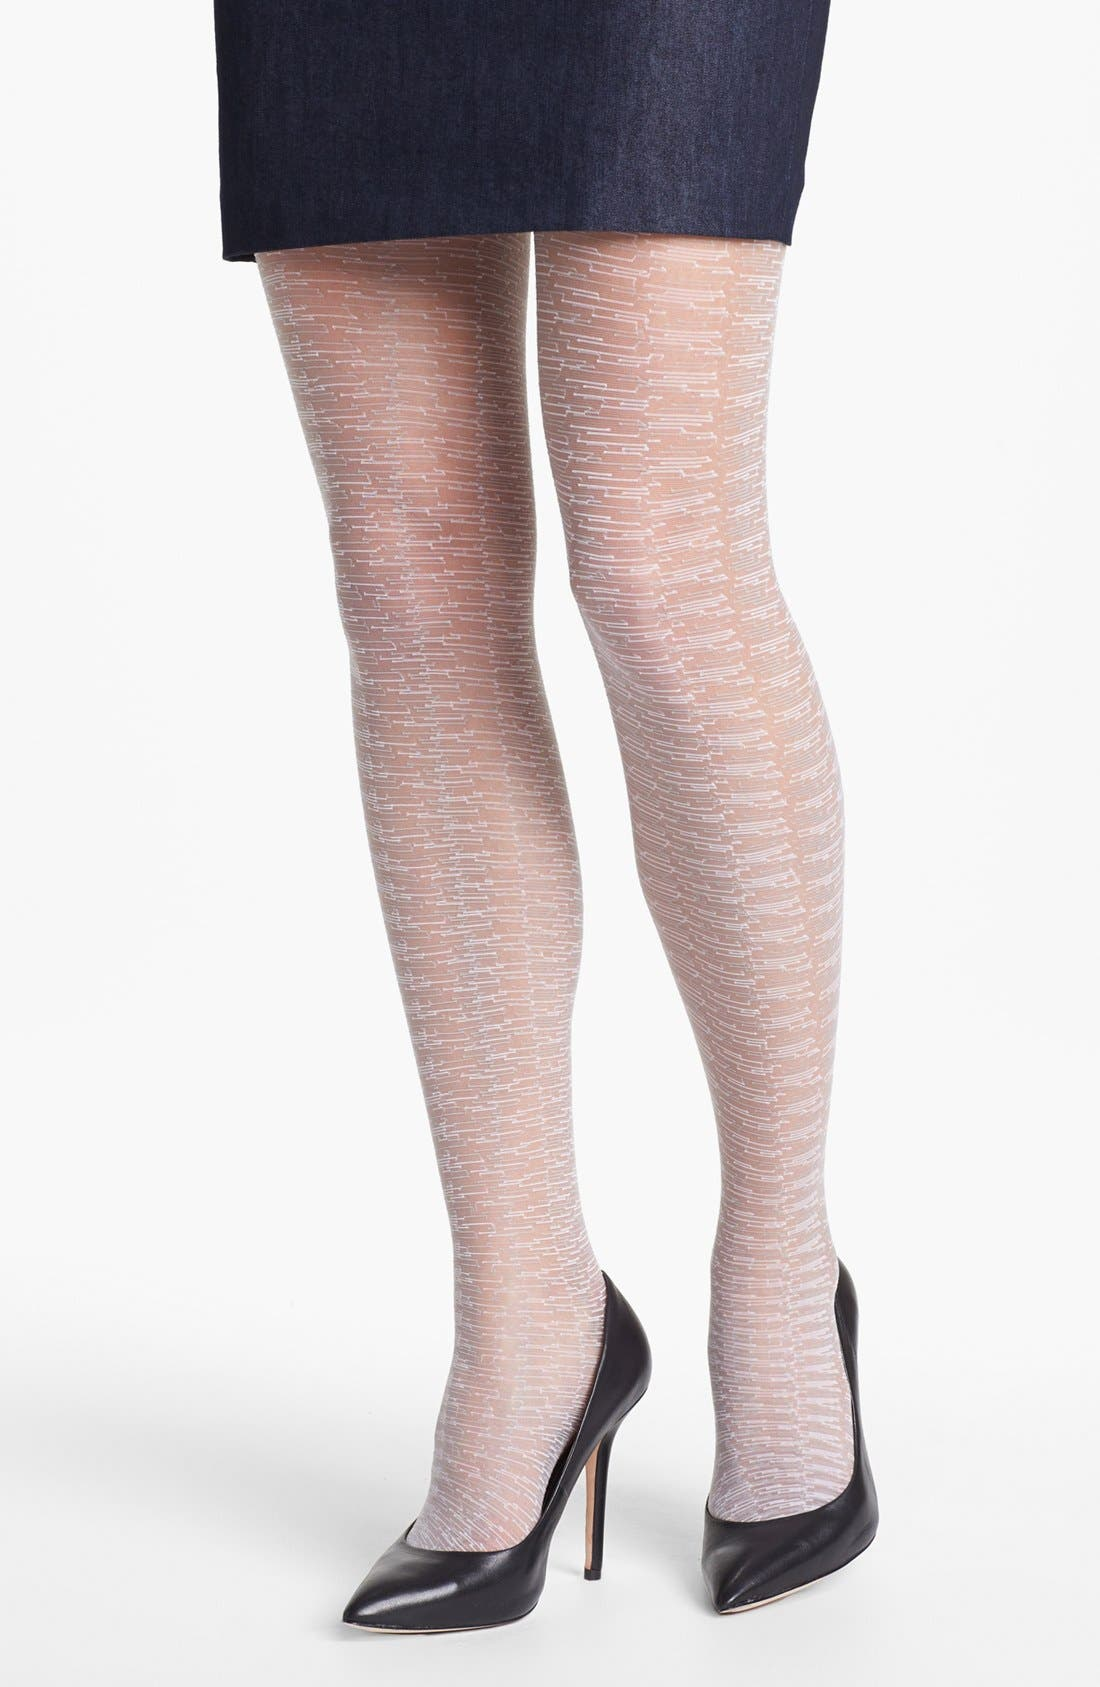 Main Image - Calvin Klein Sheer Textured Pantyhose